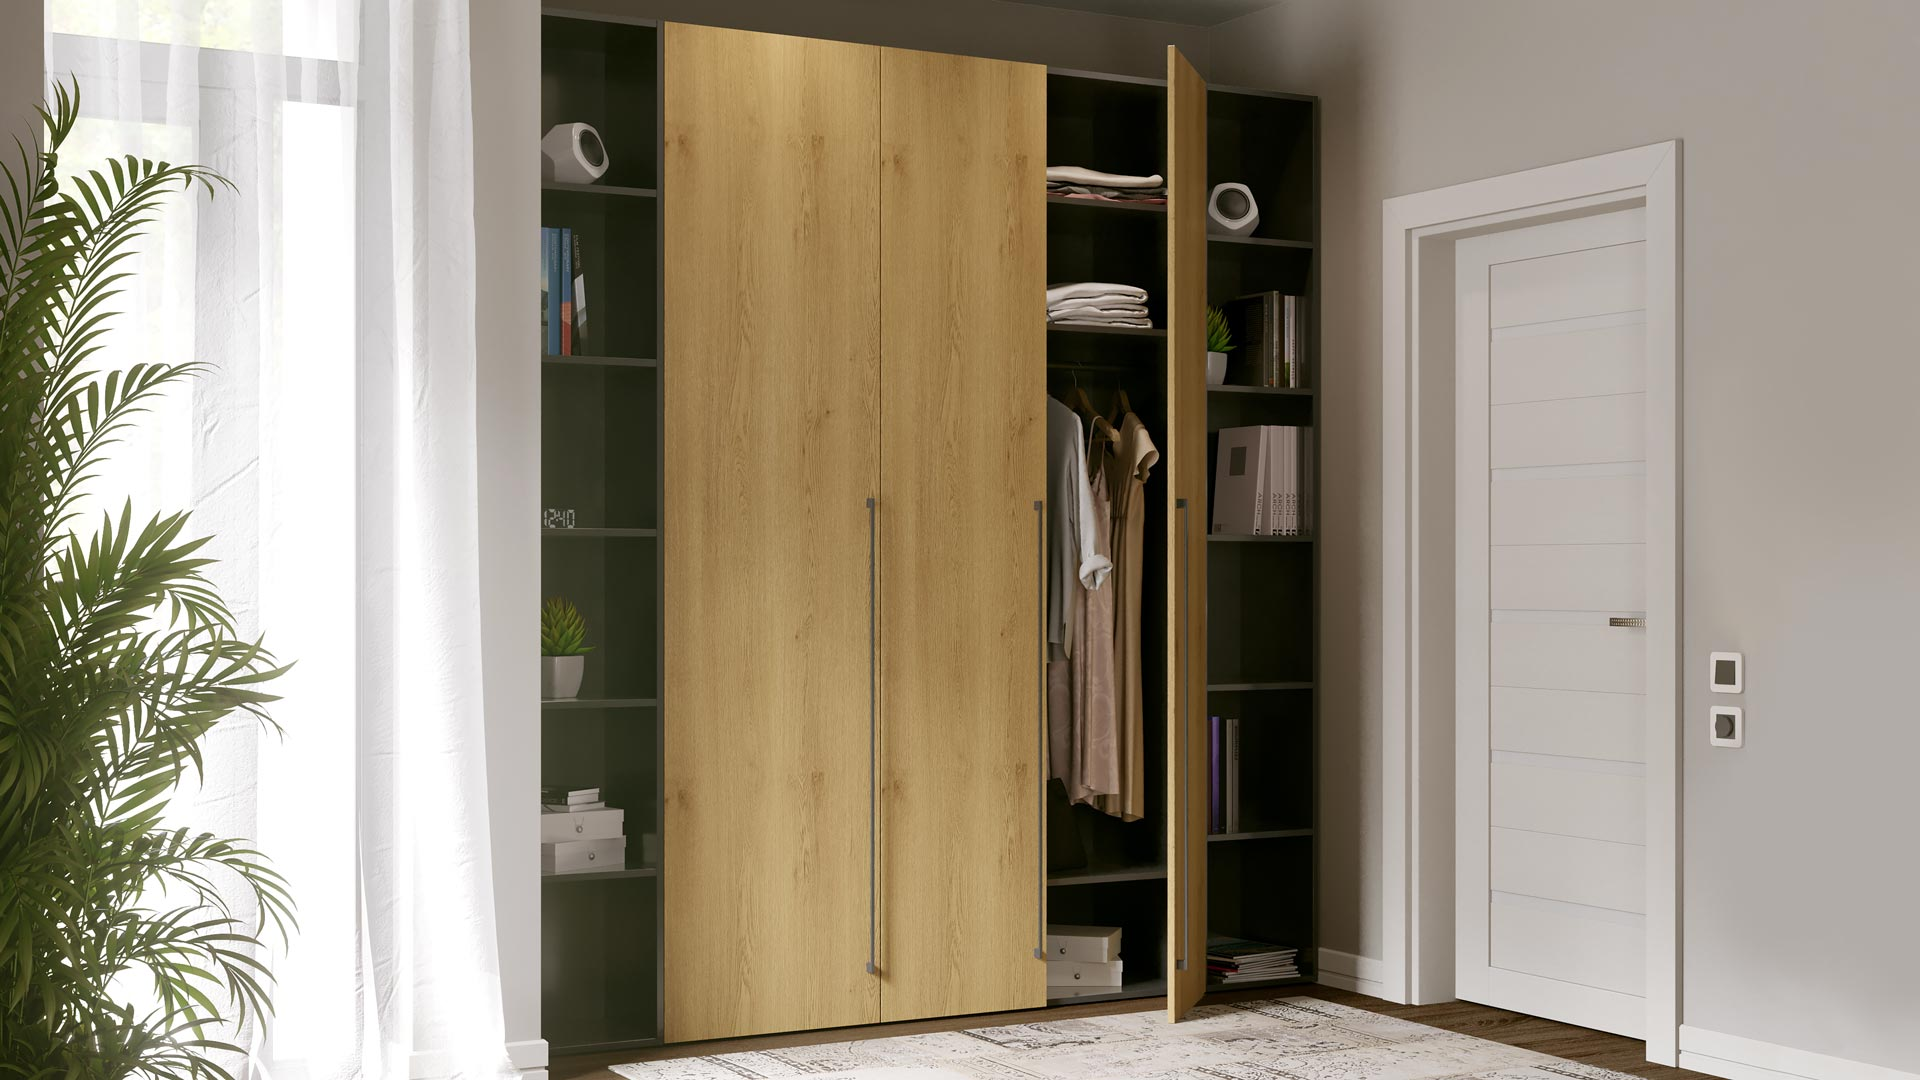 Modern Verno Lite wardrobes - premium quality at an affordable price